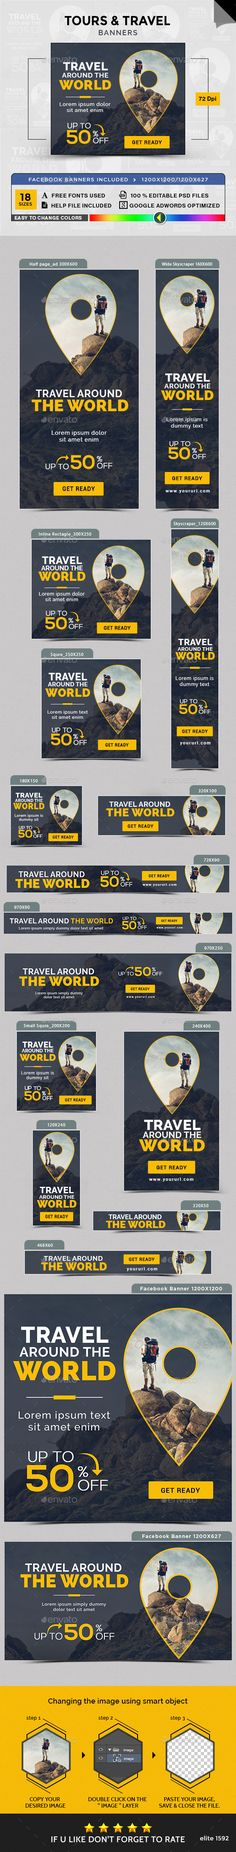 Tours & Travel Banners Template PSD. Download here: http://graphicriver.net/item/tours-travel-banners/16641988?ref=ksioks